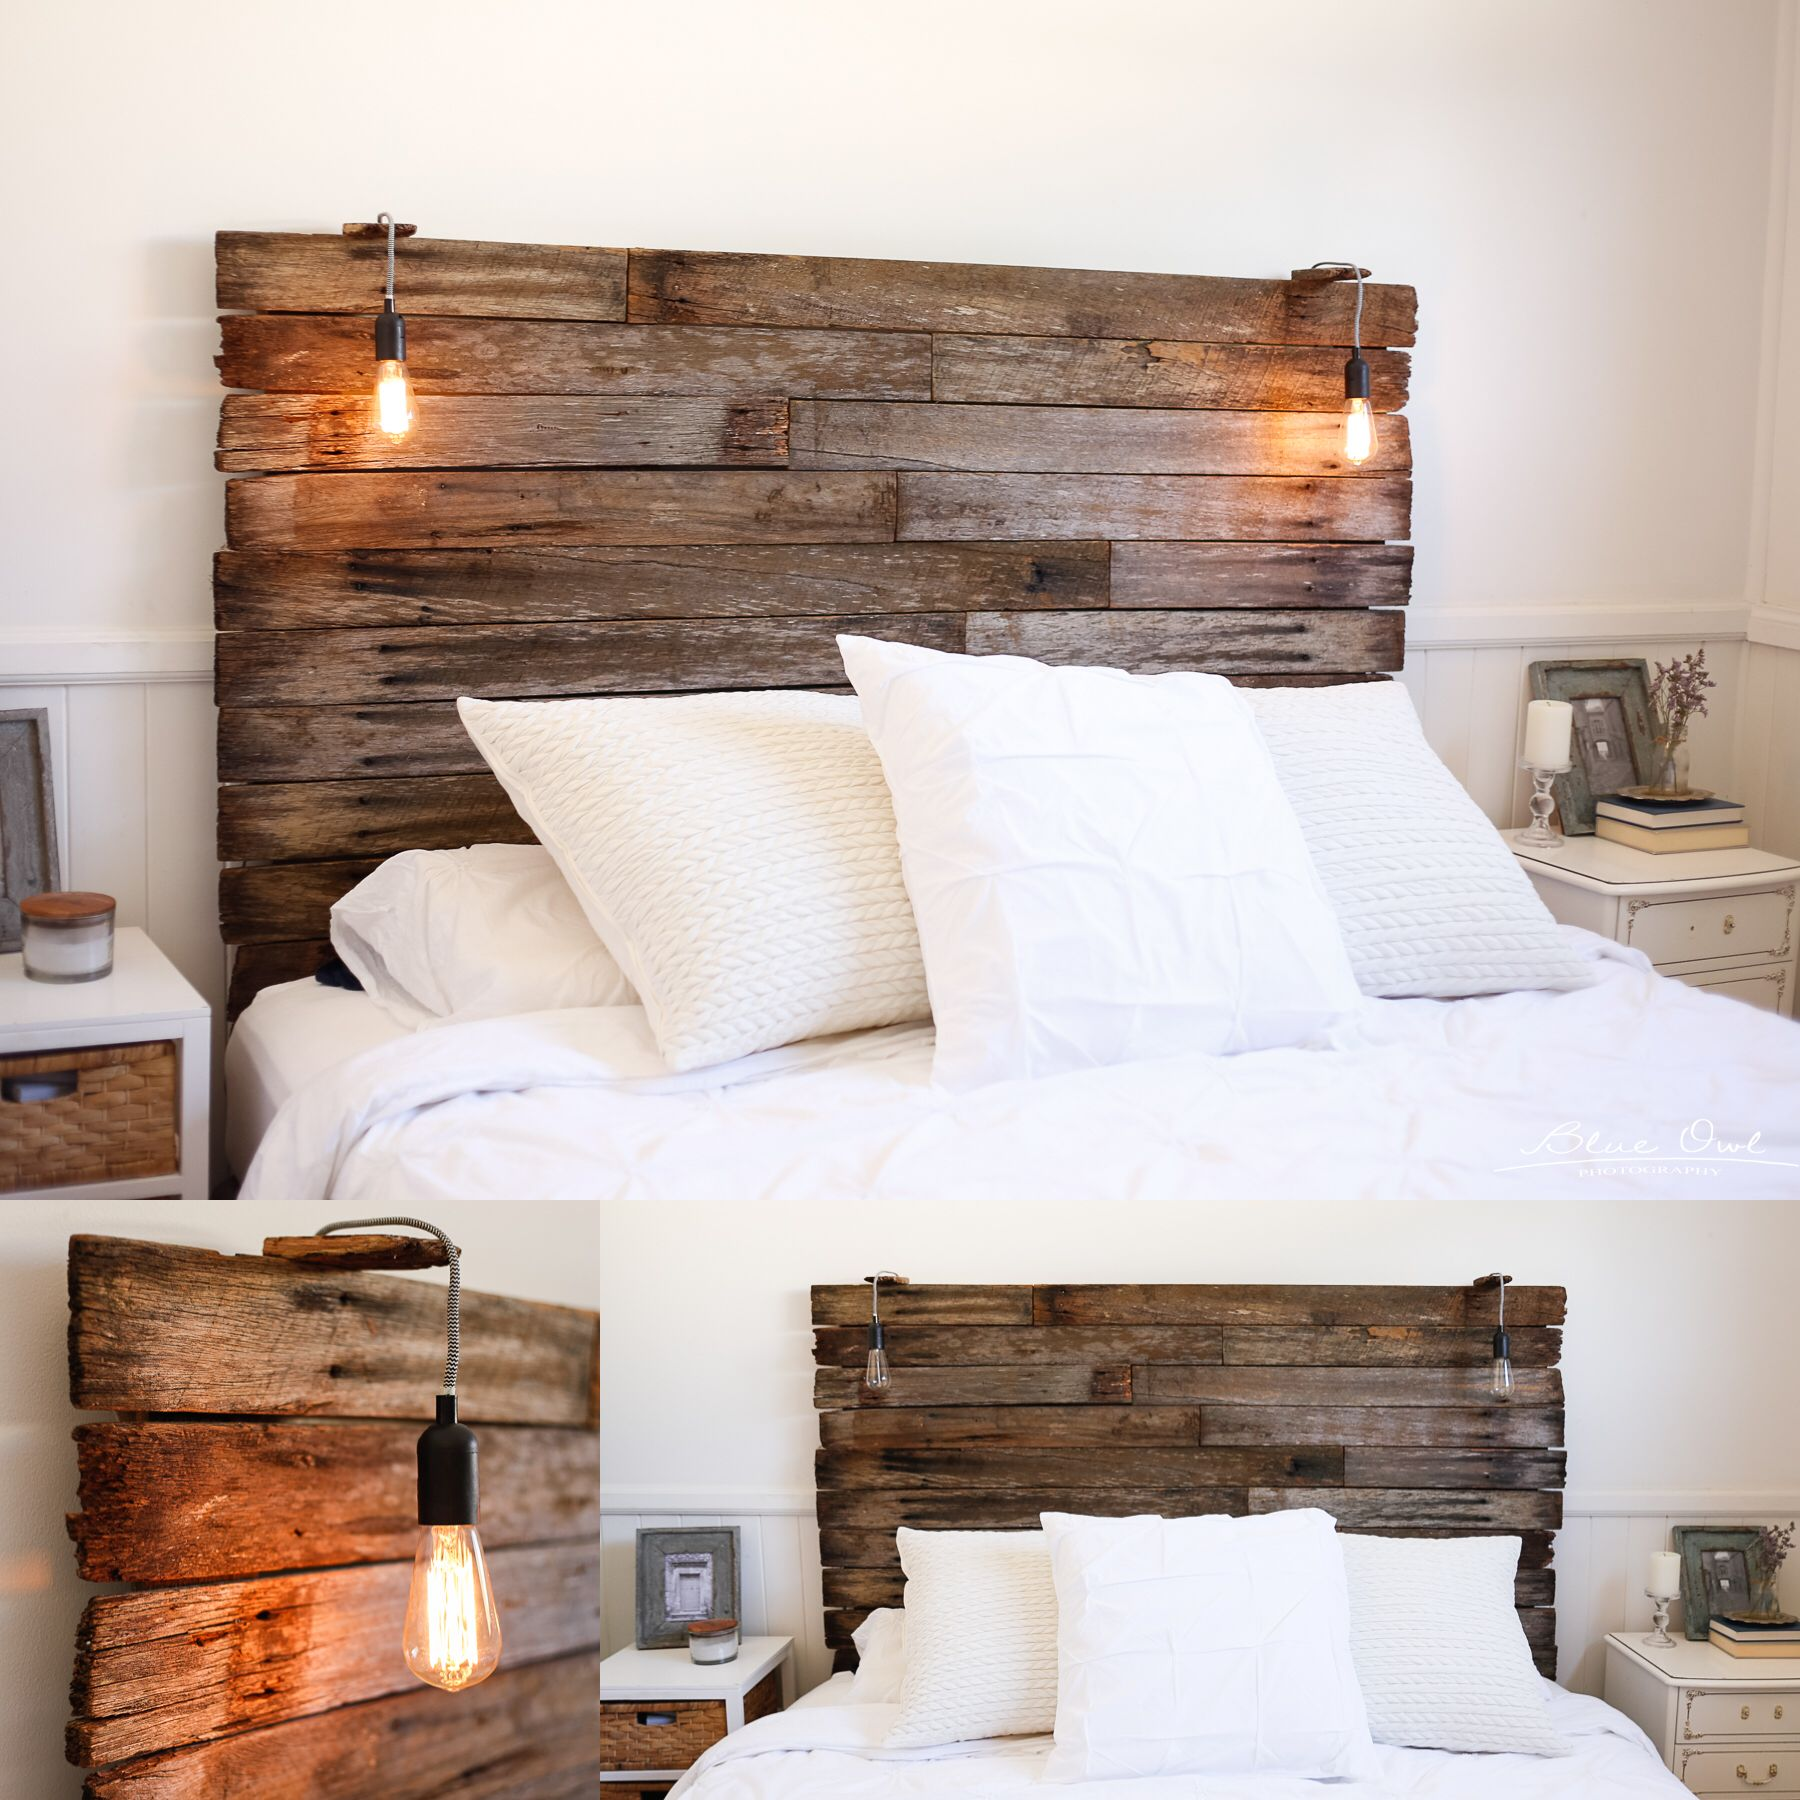 my recycled rustic fence pailing timber bedhead lamp